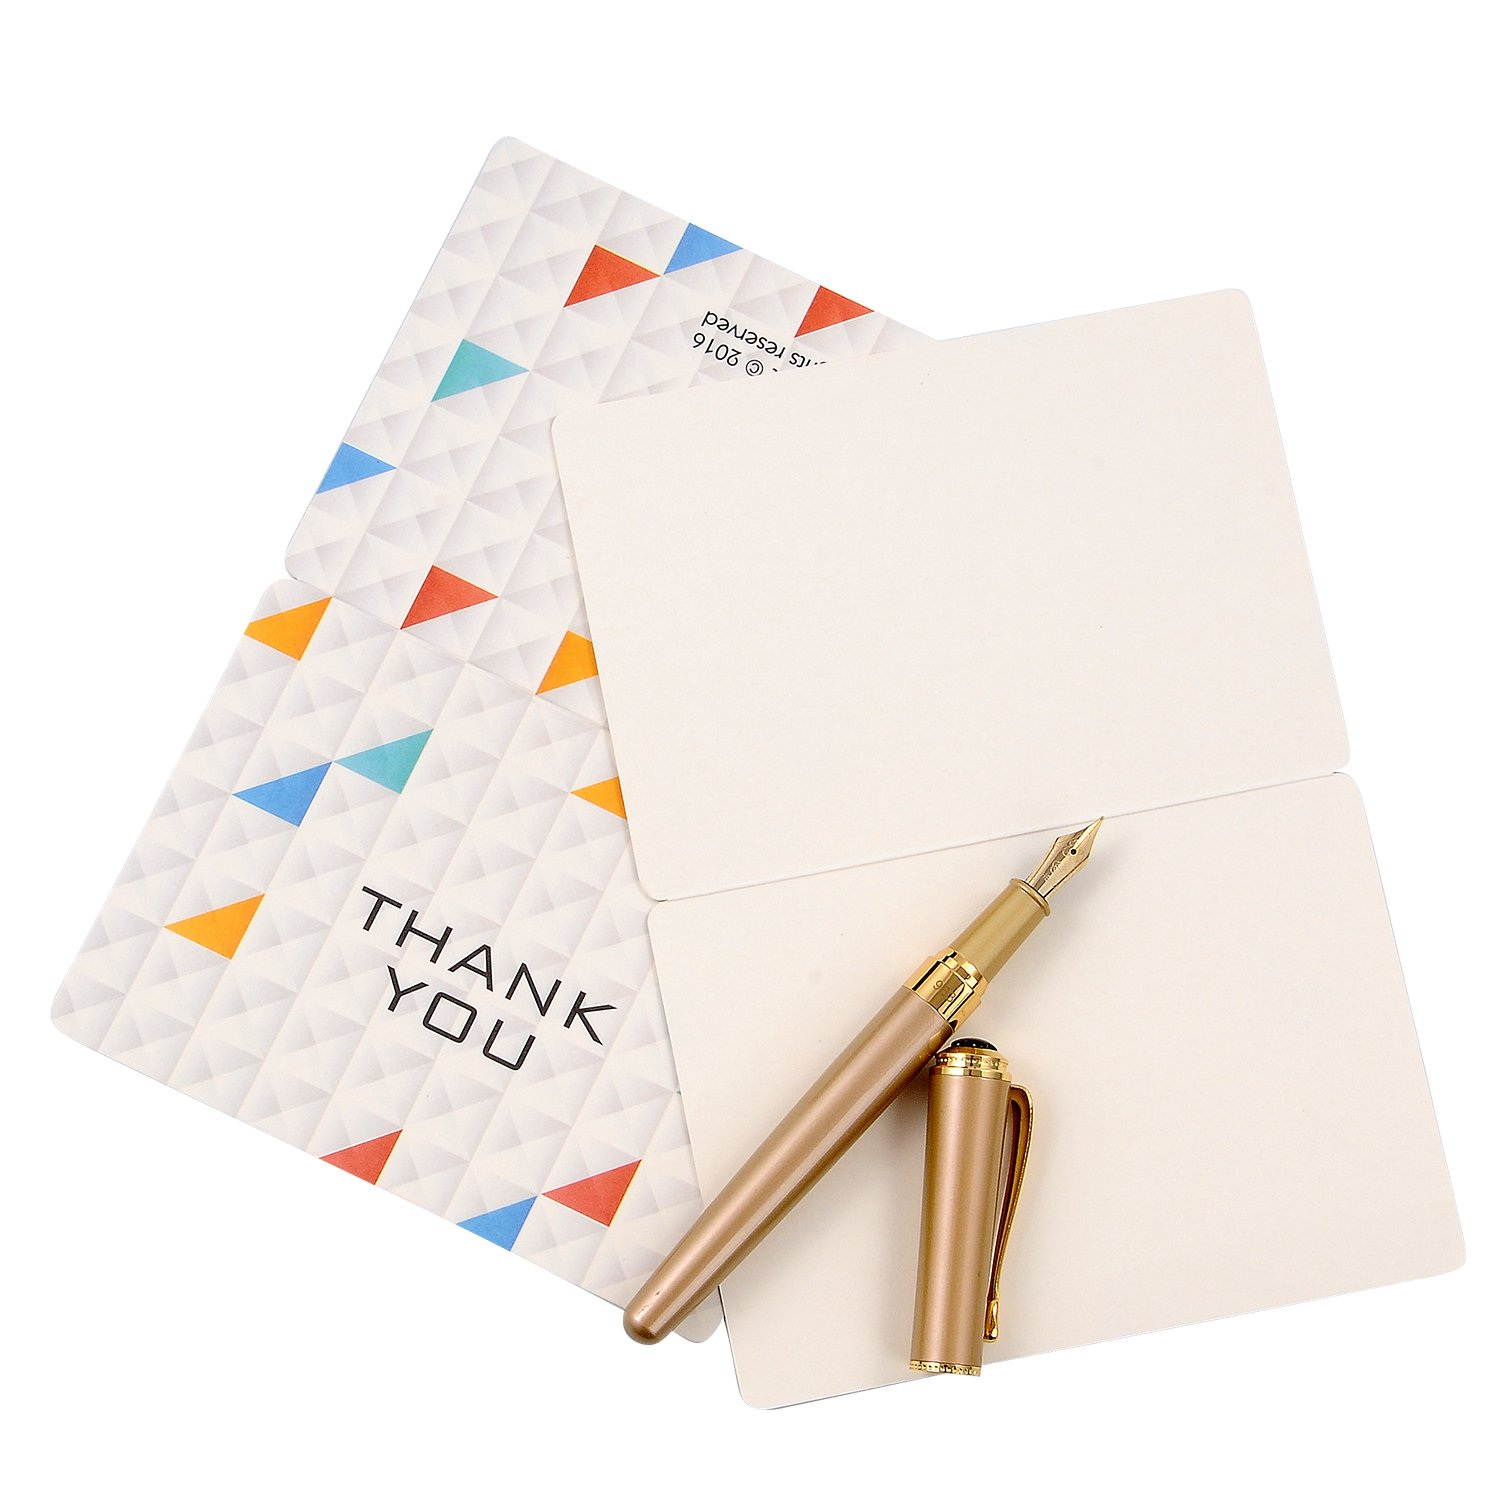 Amazon thank you cards with envelopes bezgar 12 note blank amazon thank you cards with envelopes bezgar 12 note blank cards 3 designs office products kristyandbryce Gallery